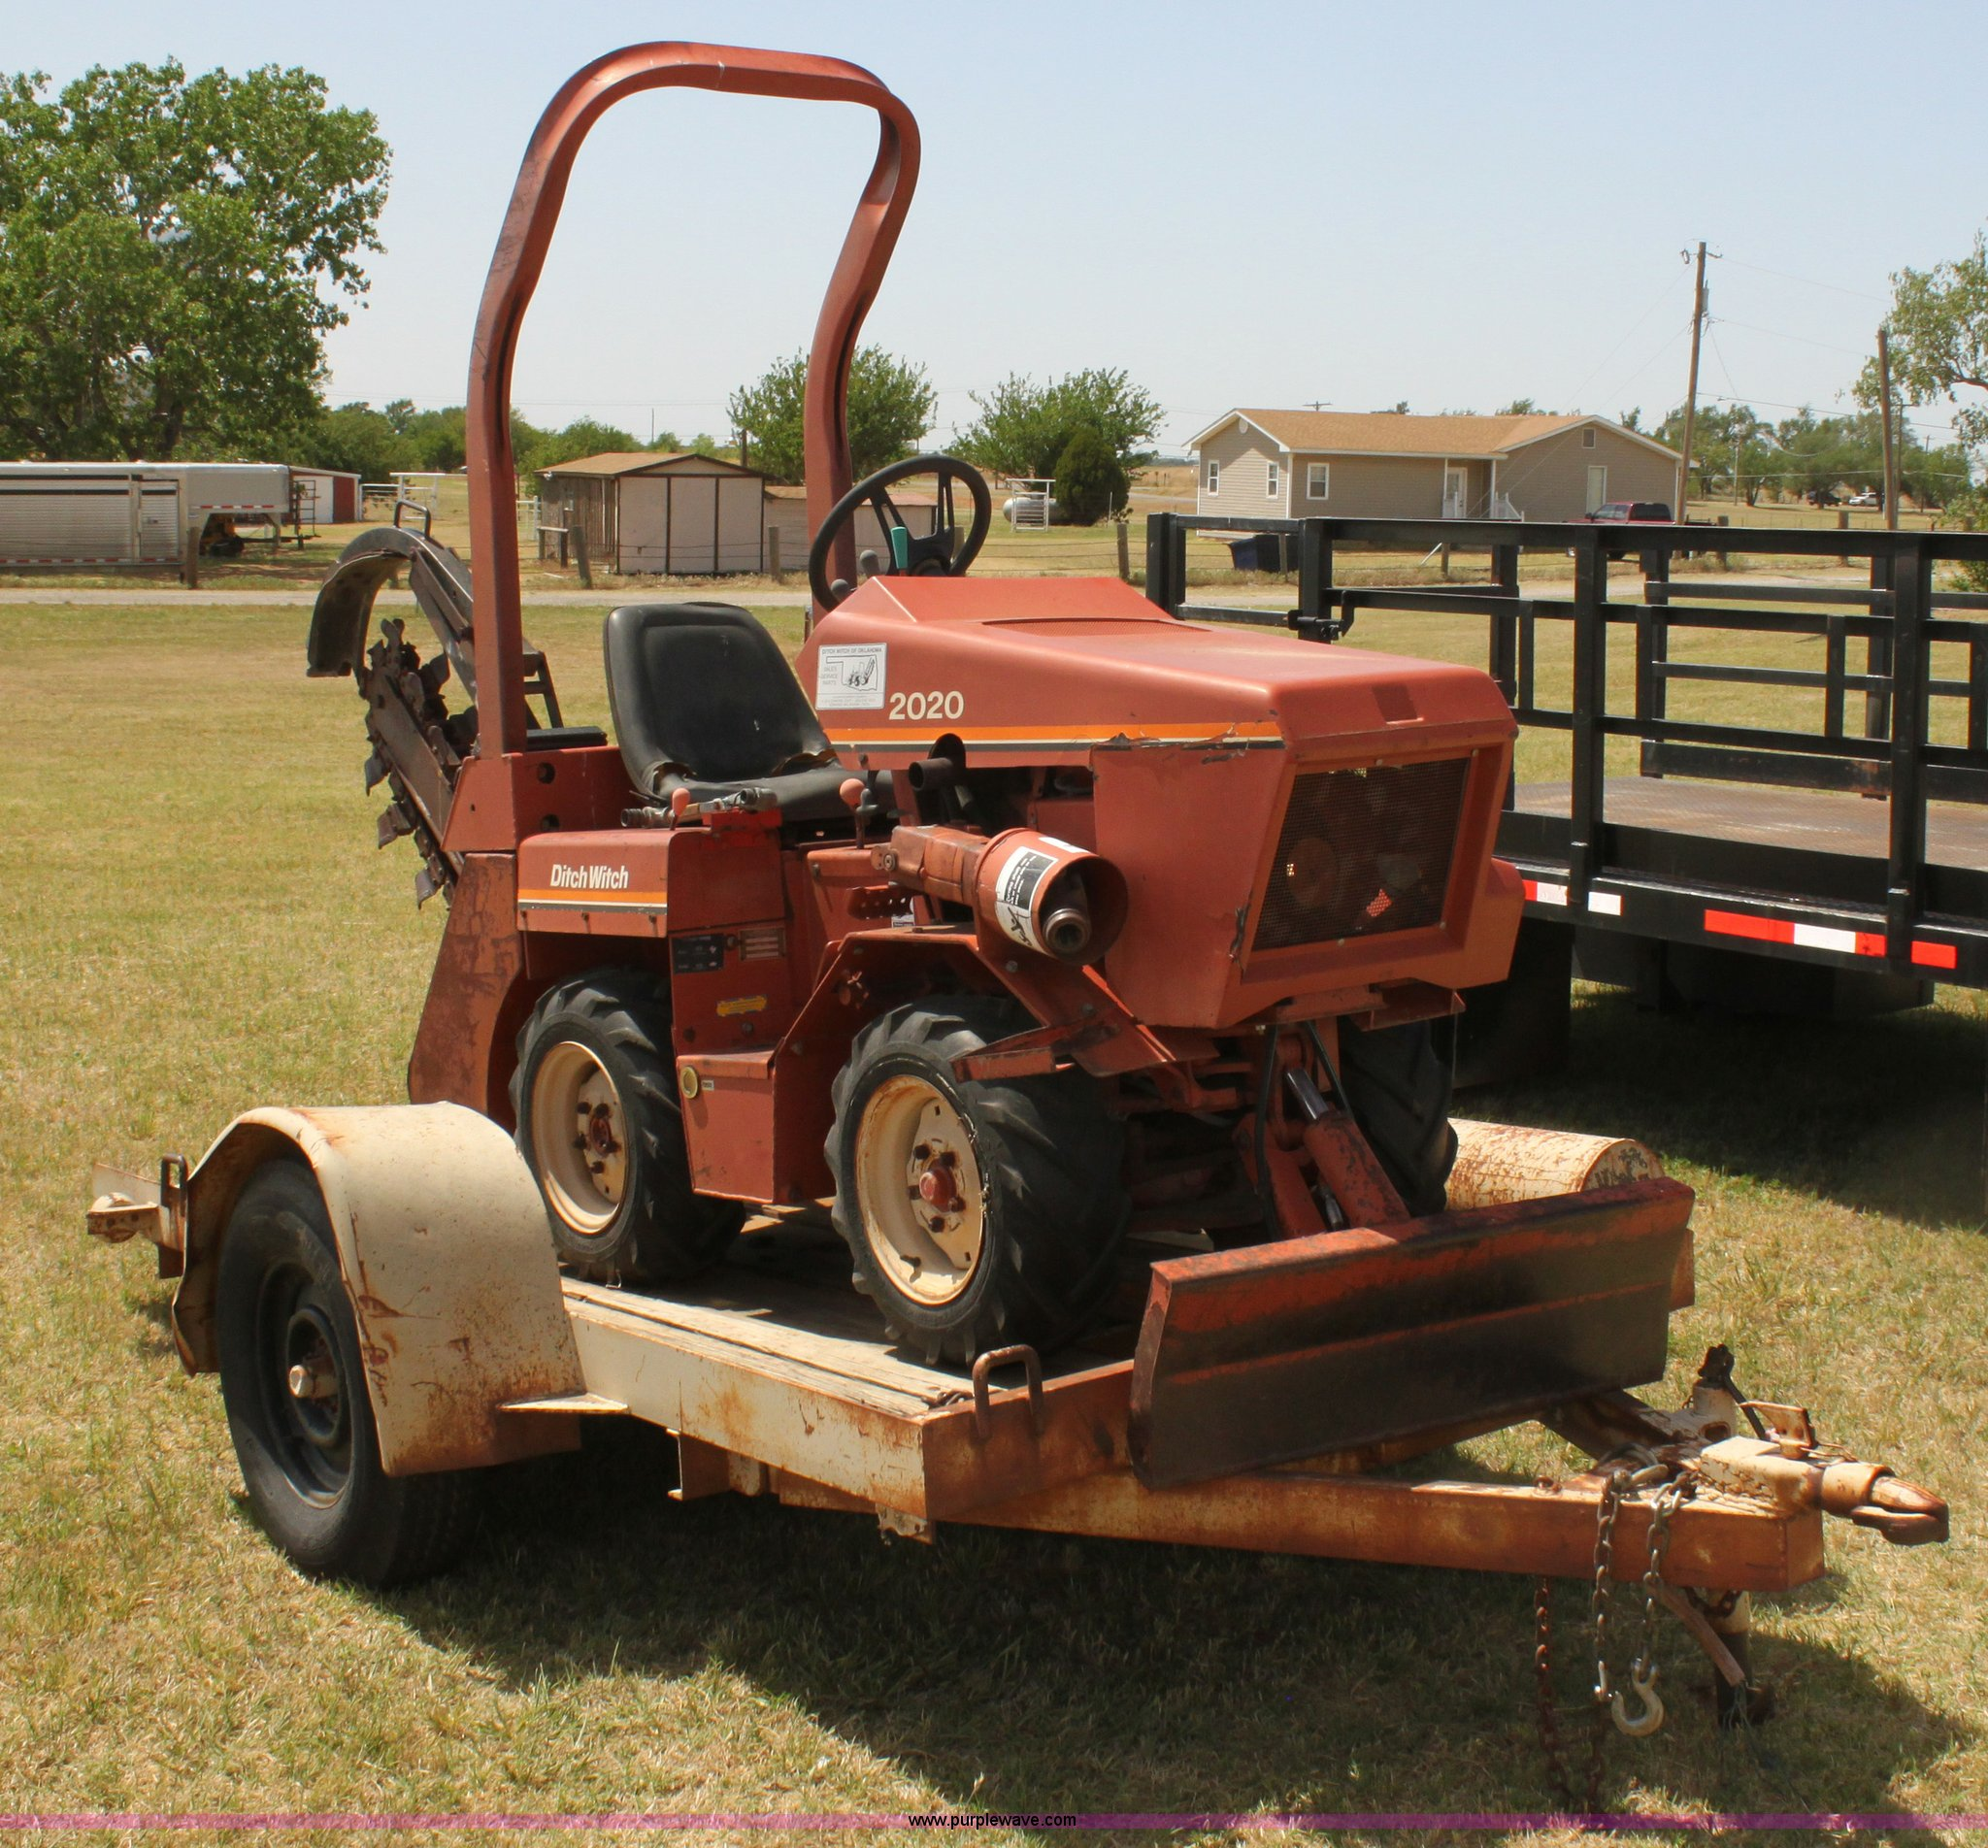 Ditch Witch 2020 trencher | Item I7459 | SOLD! June 12 Const